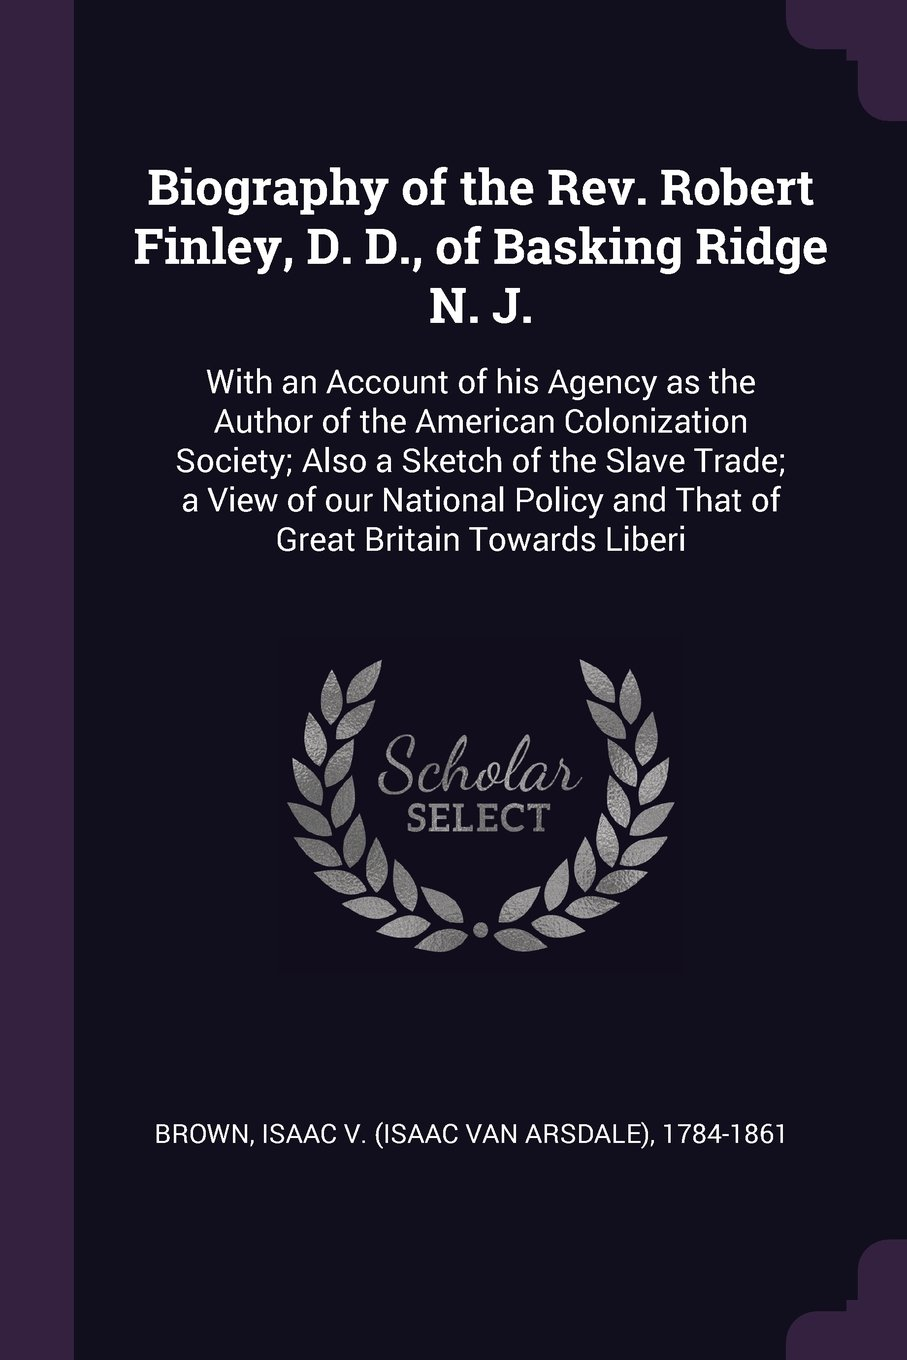 Download Biography of the Rev. Robert Finley, D. D., of Basking Ridge N. J.: With an Account of his Agency as the Author of the American Colonization Society; ... and That of Great Britain Towards Liberi ebook